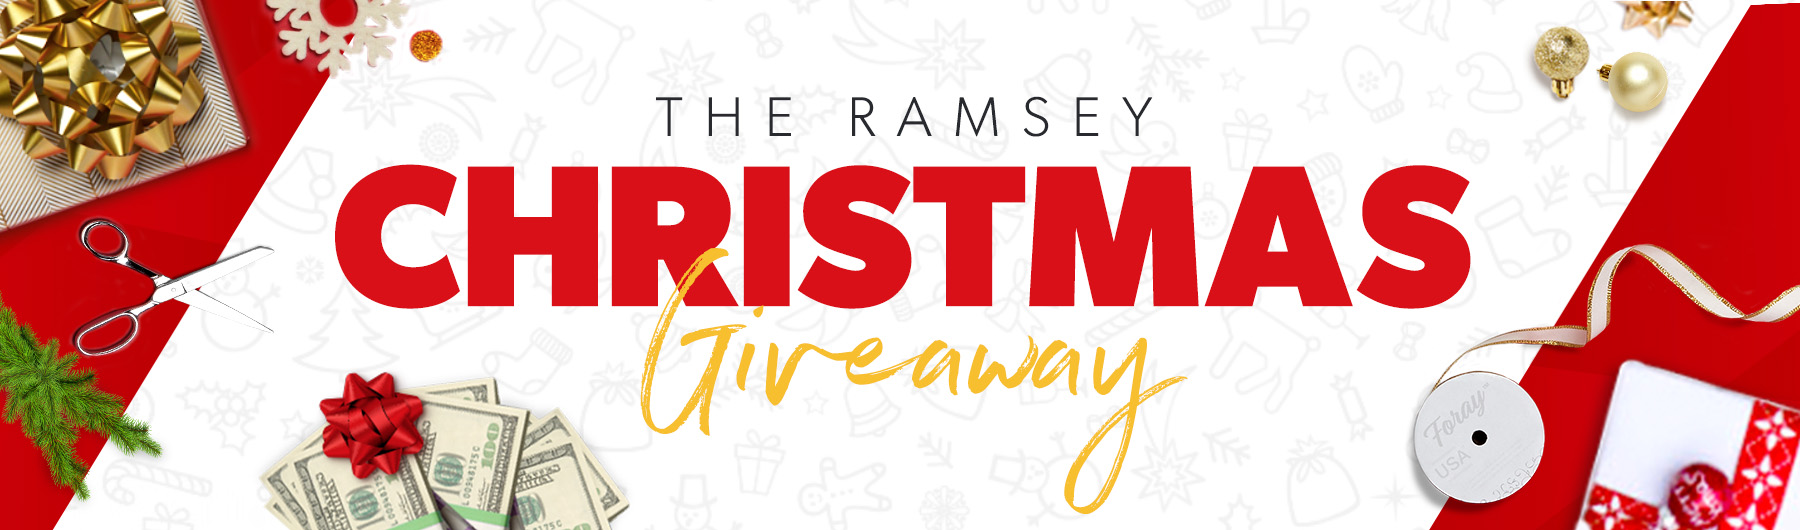 The Ramsey Christmas Giveaway | DaveRamsey.com